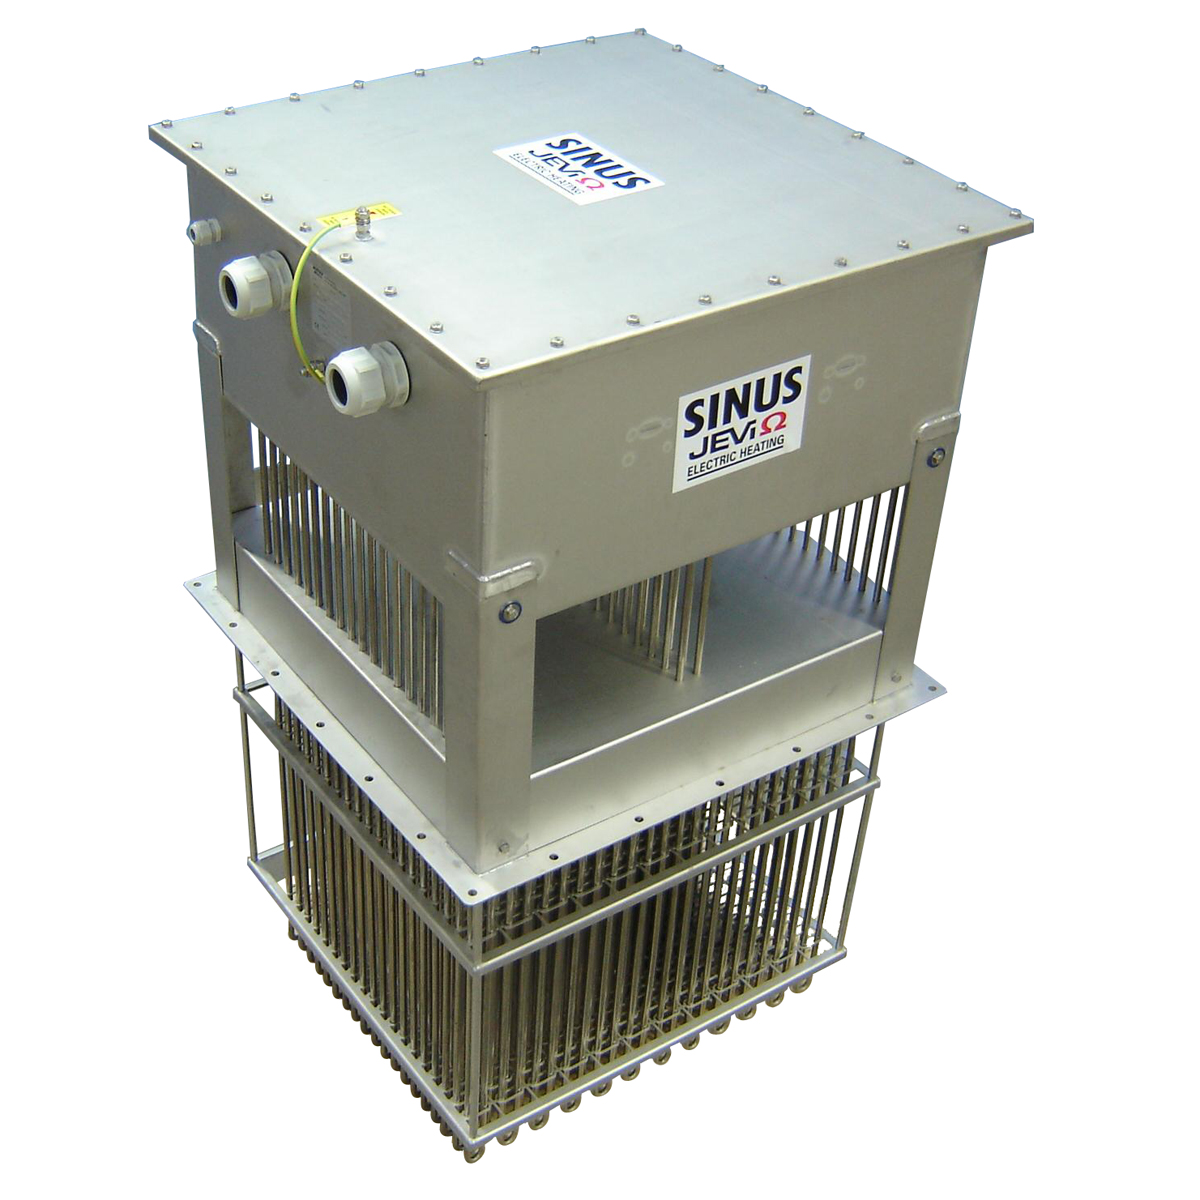 #515D7A Air Duct Heaters Special SinusJevi Best 3453 Heater Ducting Supplies photos with 1200x1200 px on helpvideos.info - Air Conditioners, Air Coolers and more